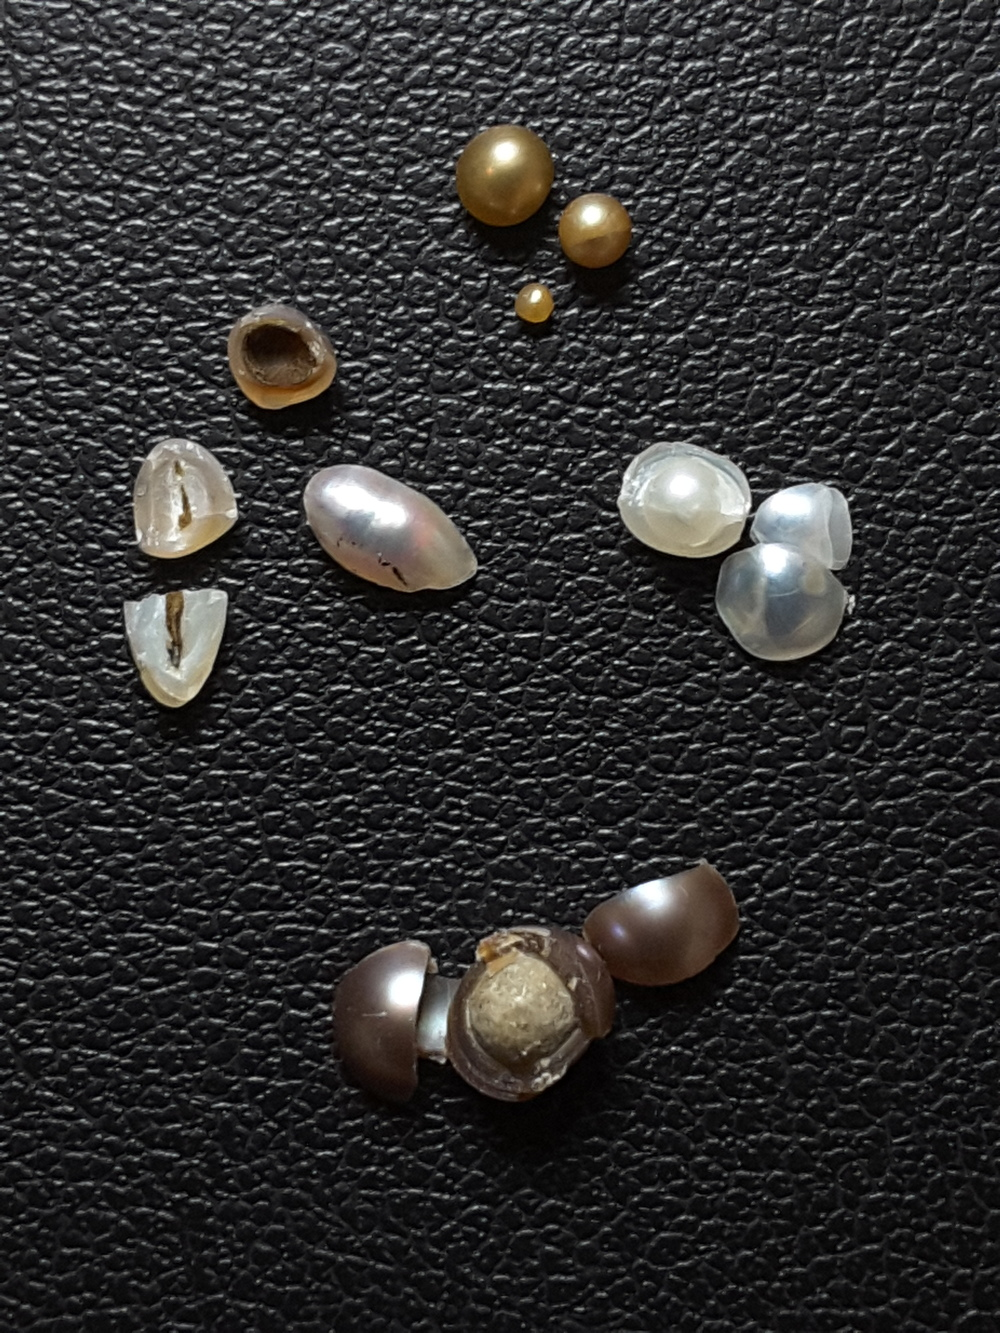 Mexican Pteria sterna natural pearls from the research collection at IACT. Source: Perlas del Mar de Cortez. ■ The group of three white shards on top were a round white pearl—an outer layer of nacre has fractured away, exposing the surface of an inner layer: as often the case, their break happened along a major change in the structure of nacre. It took one more break to find out how this pearl started (below). ■ To the left: three of eighty-something small golden pearls found in a single shell—see the first growth of two of them below. ■ The bright oval and the two pieces below were a single pearl; another from the same small lot of 'hinge' pearls broke across—laf is shown with its large, hollow interior facing up. Note that both these pearls enclose empty chambers. ■ The brown pearl looks more iridescent, darker and not necessarily brown in person—the camera would not play along. The large mineral body turned out to be a beautiful surprise, impossible to guess from its rough skin visible here.